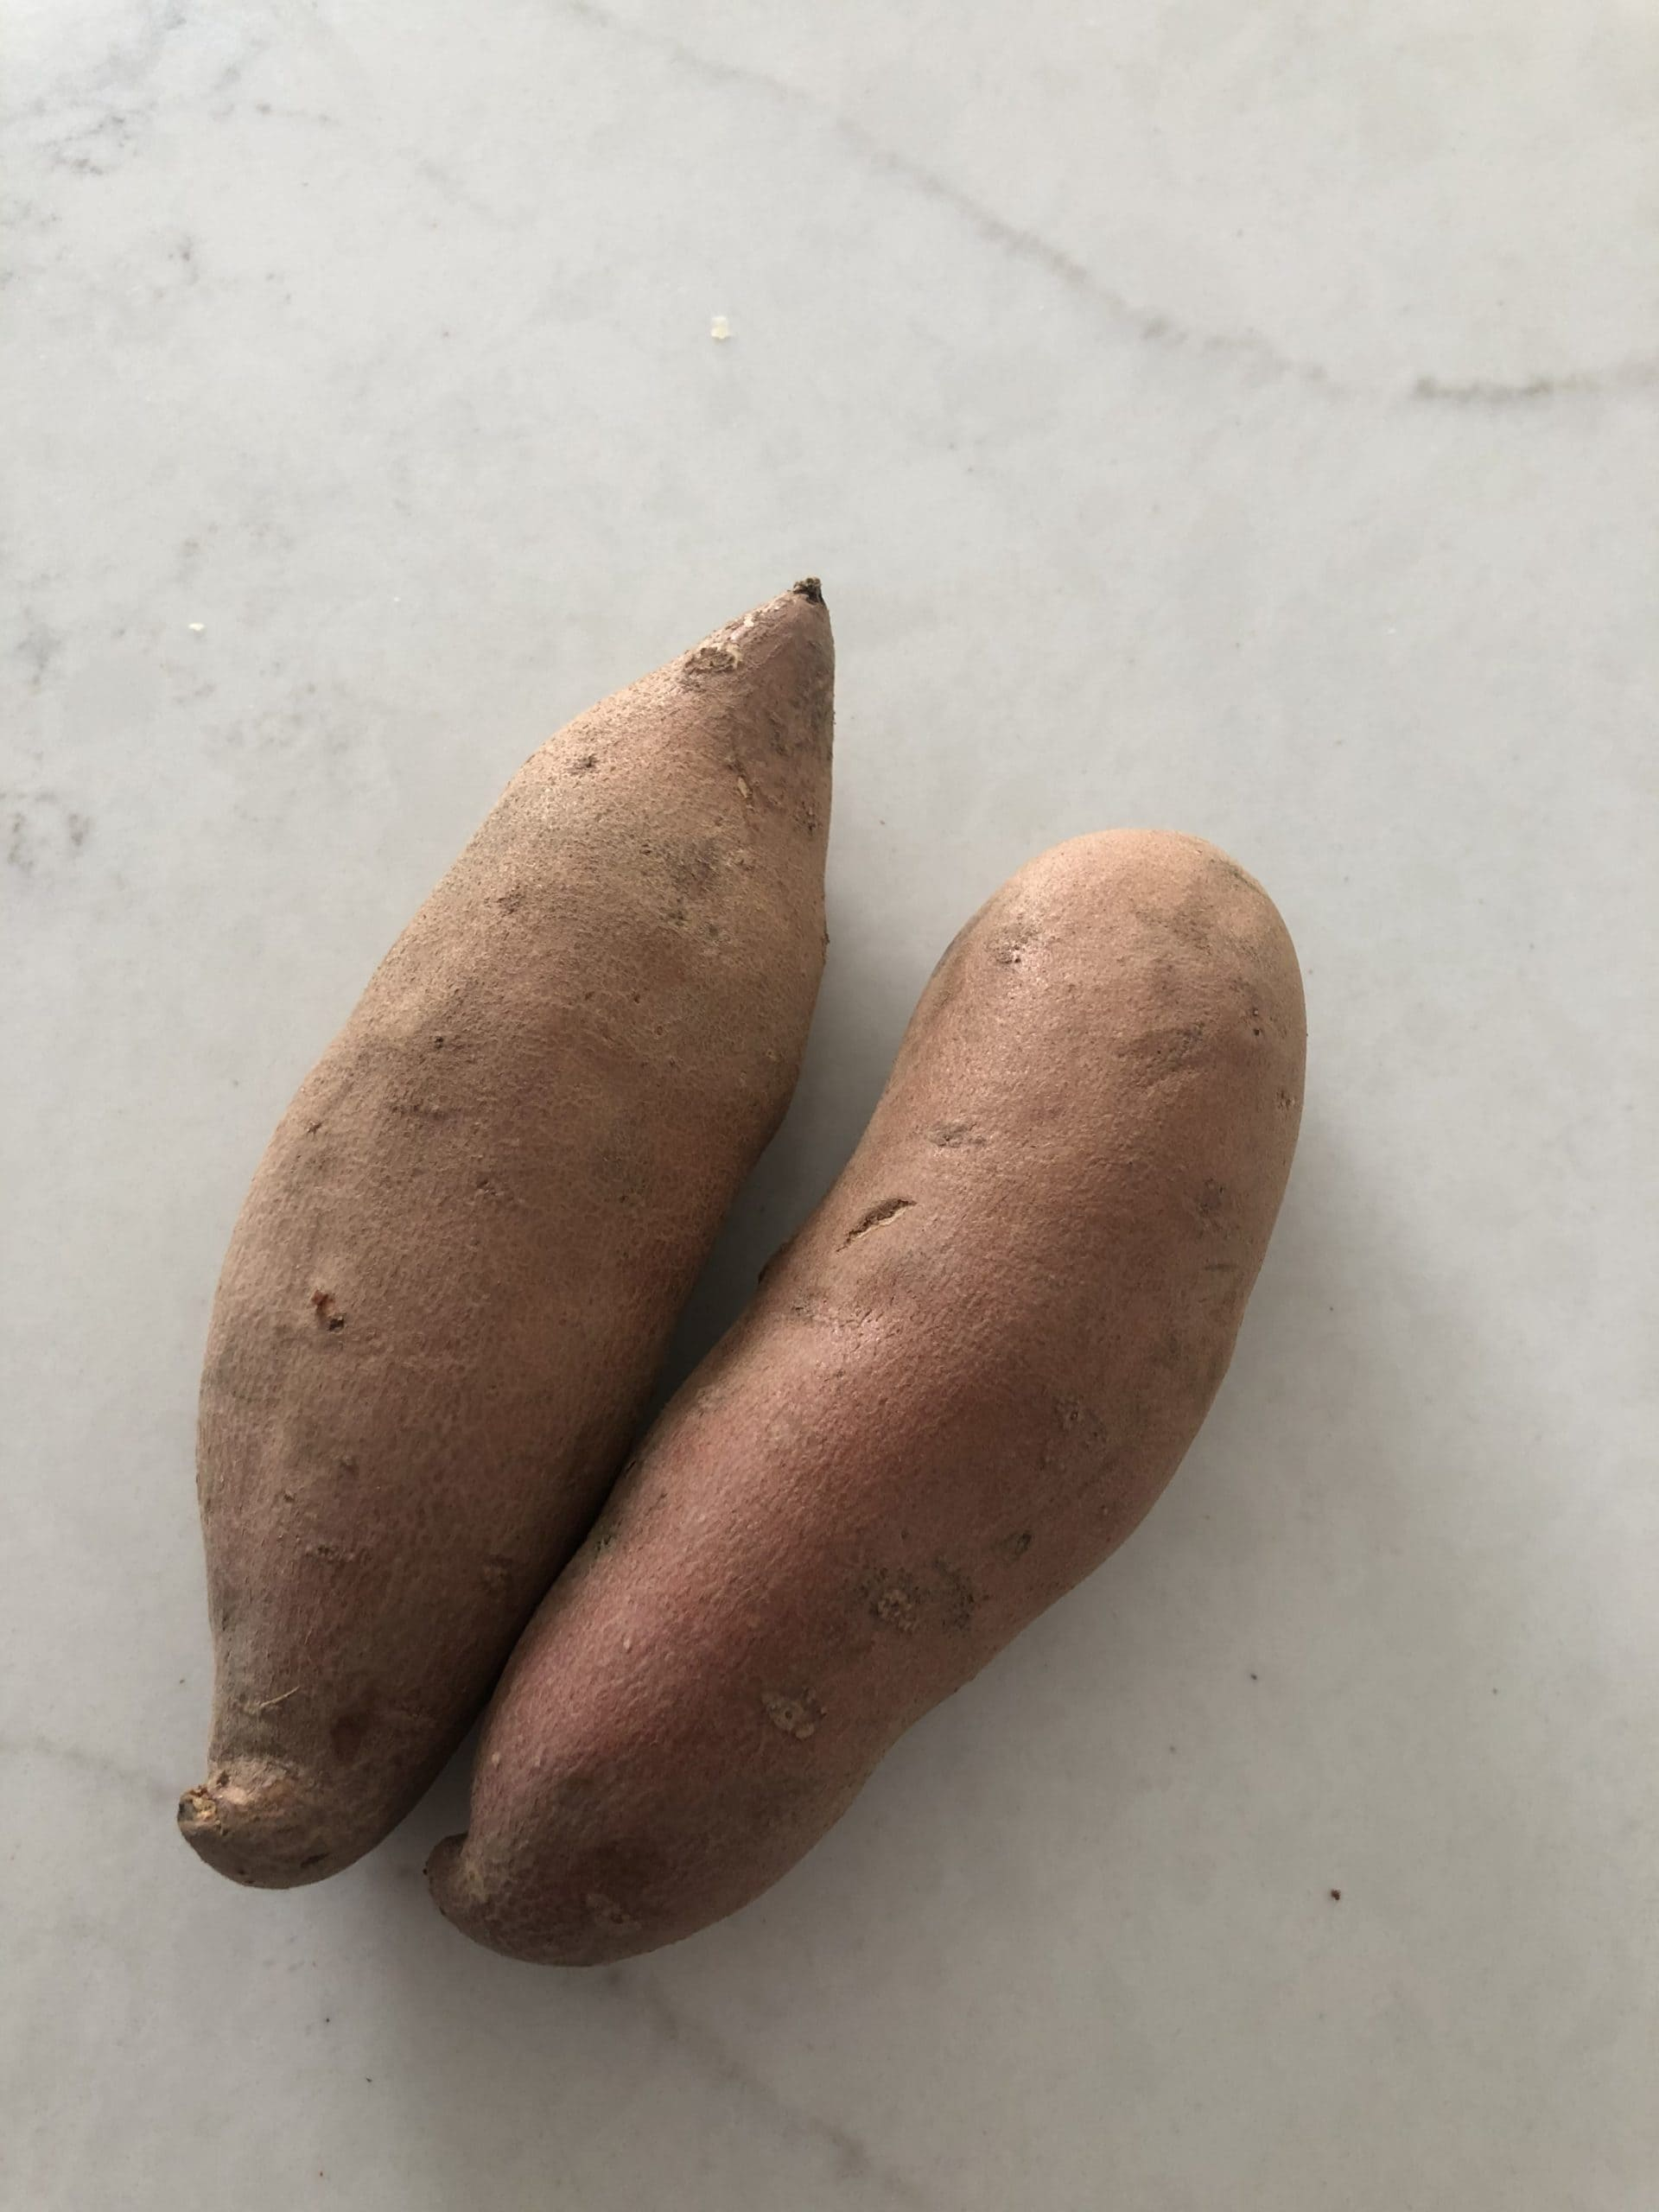 small sweet potatoes on a counter